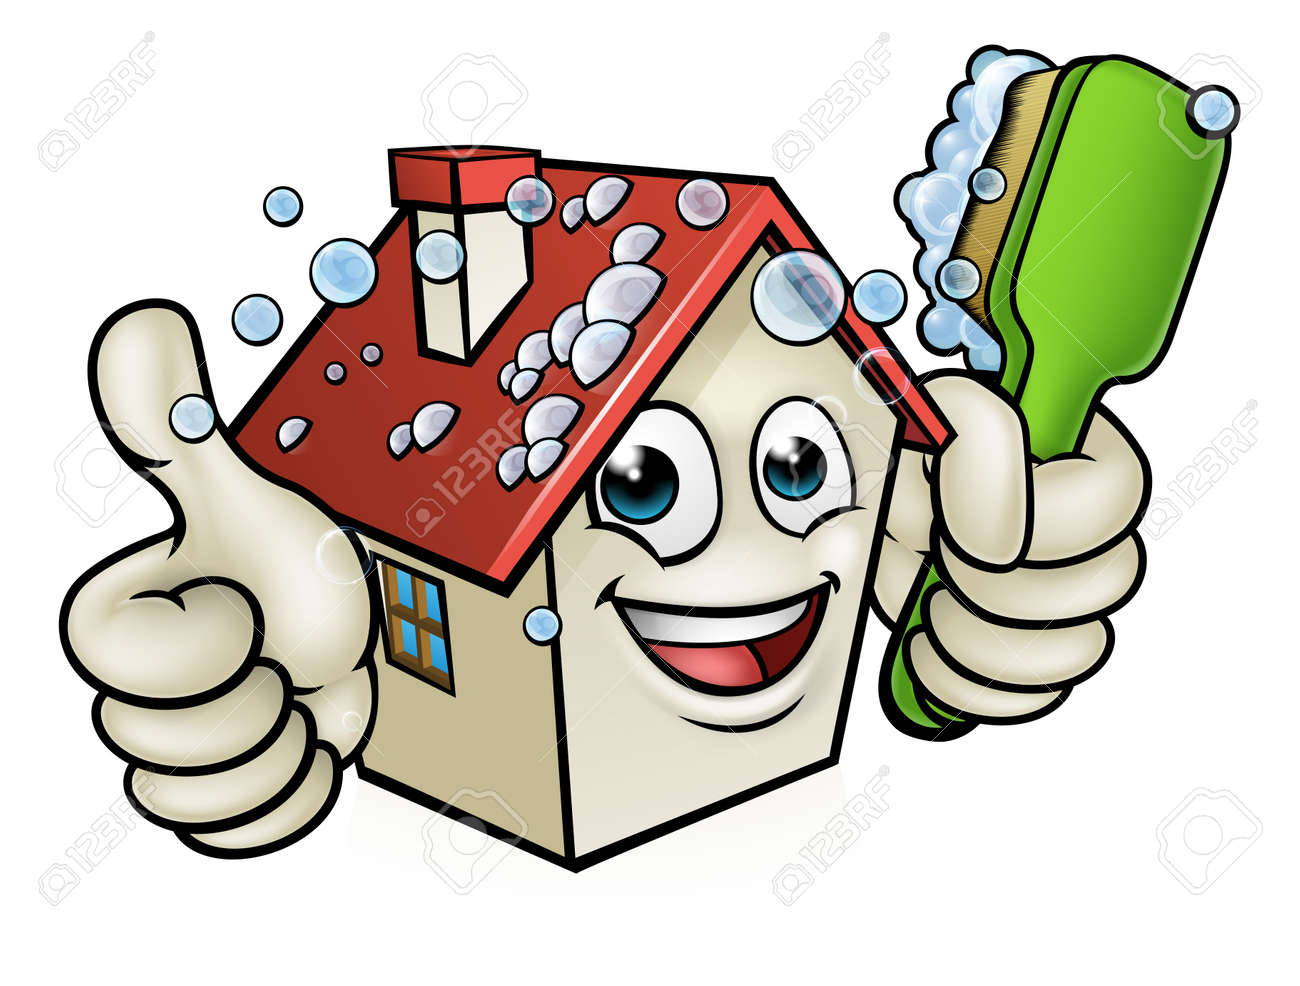 A happy cartoon house man mascot character holding scrubbing cleaning brush and giving a thumbs up - 80115541